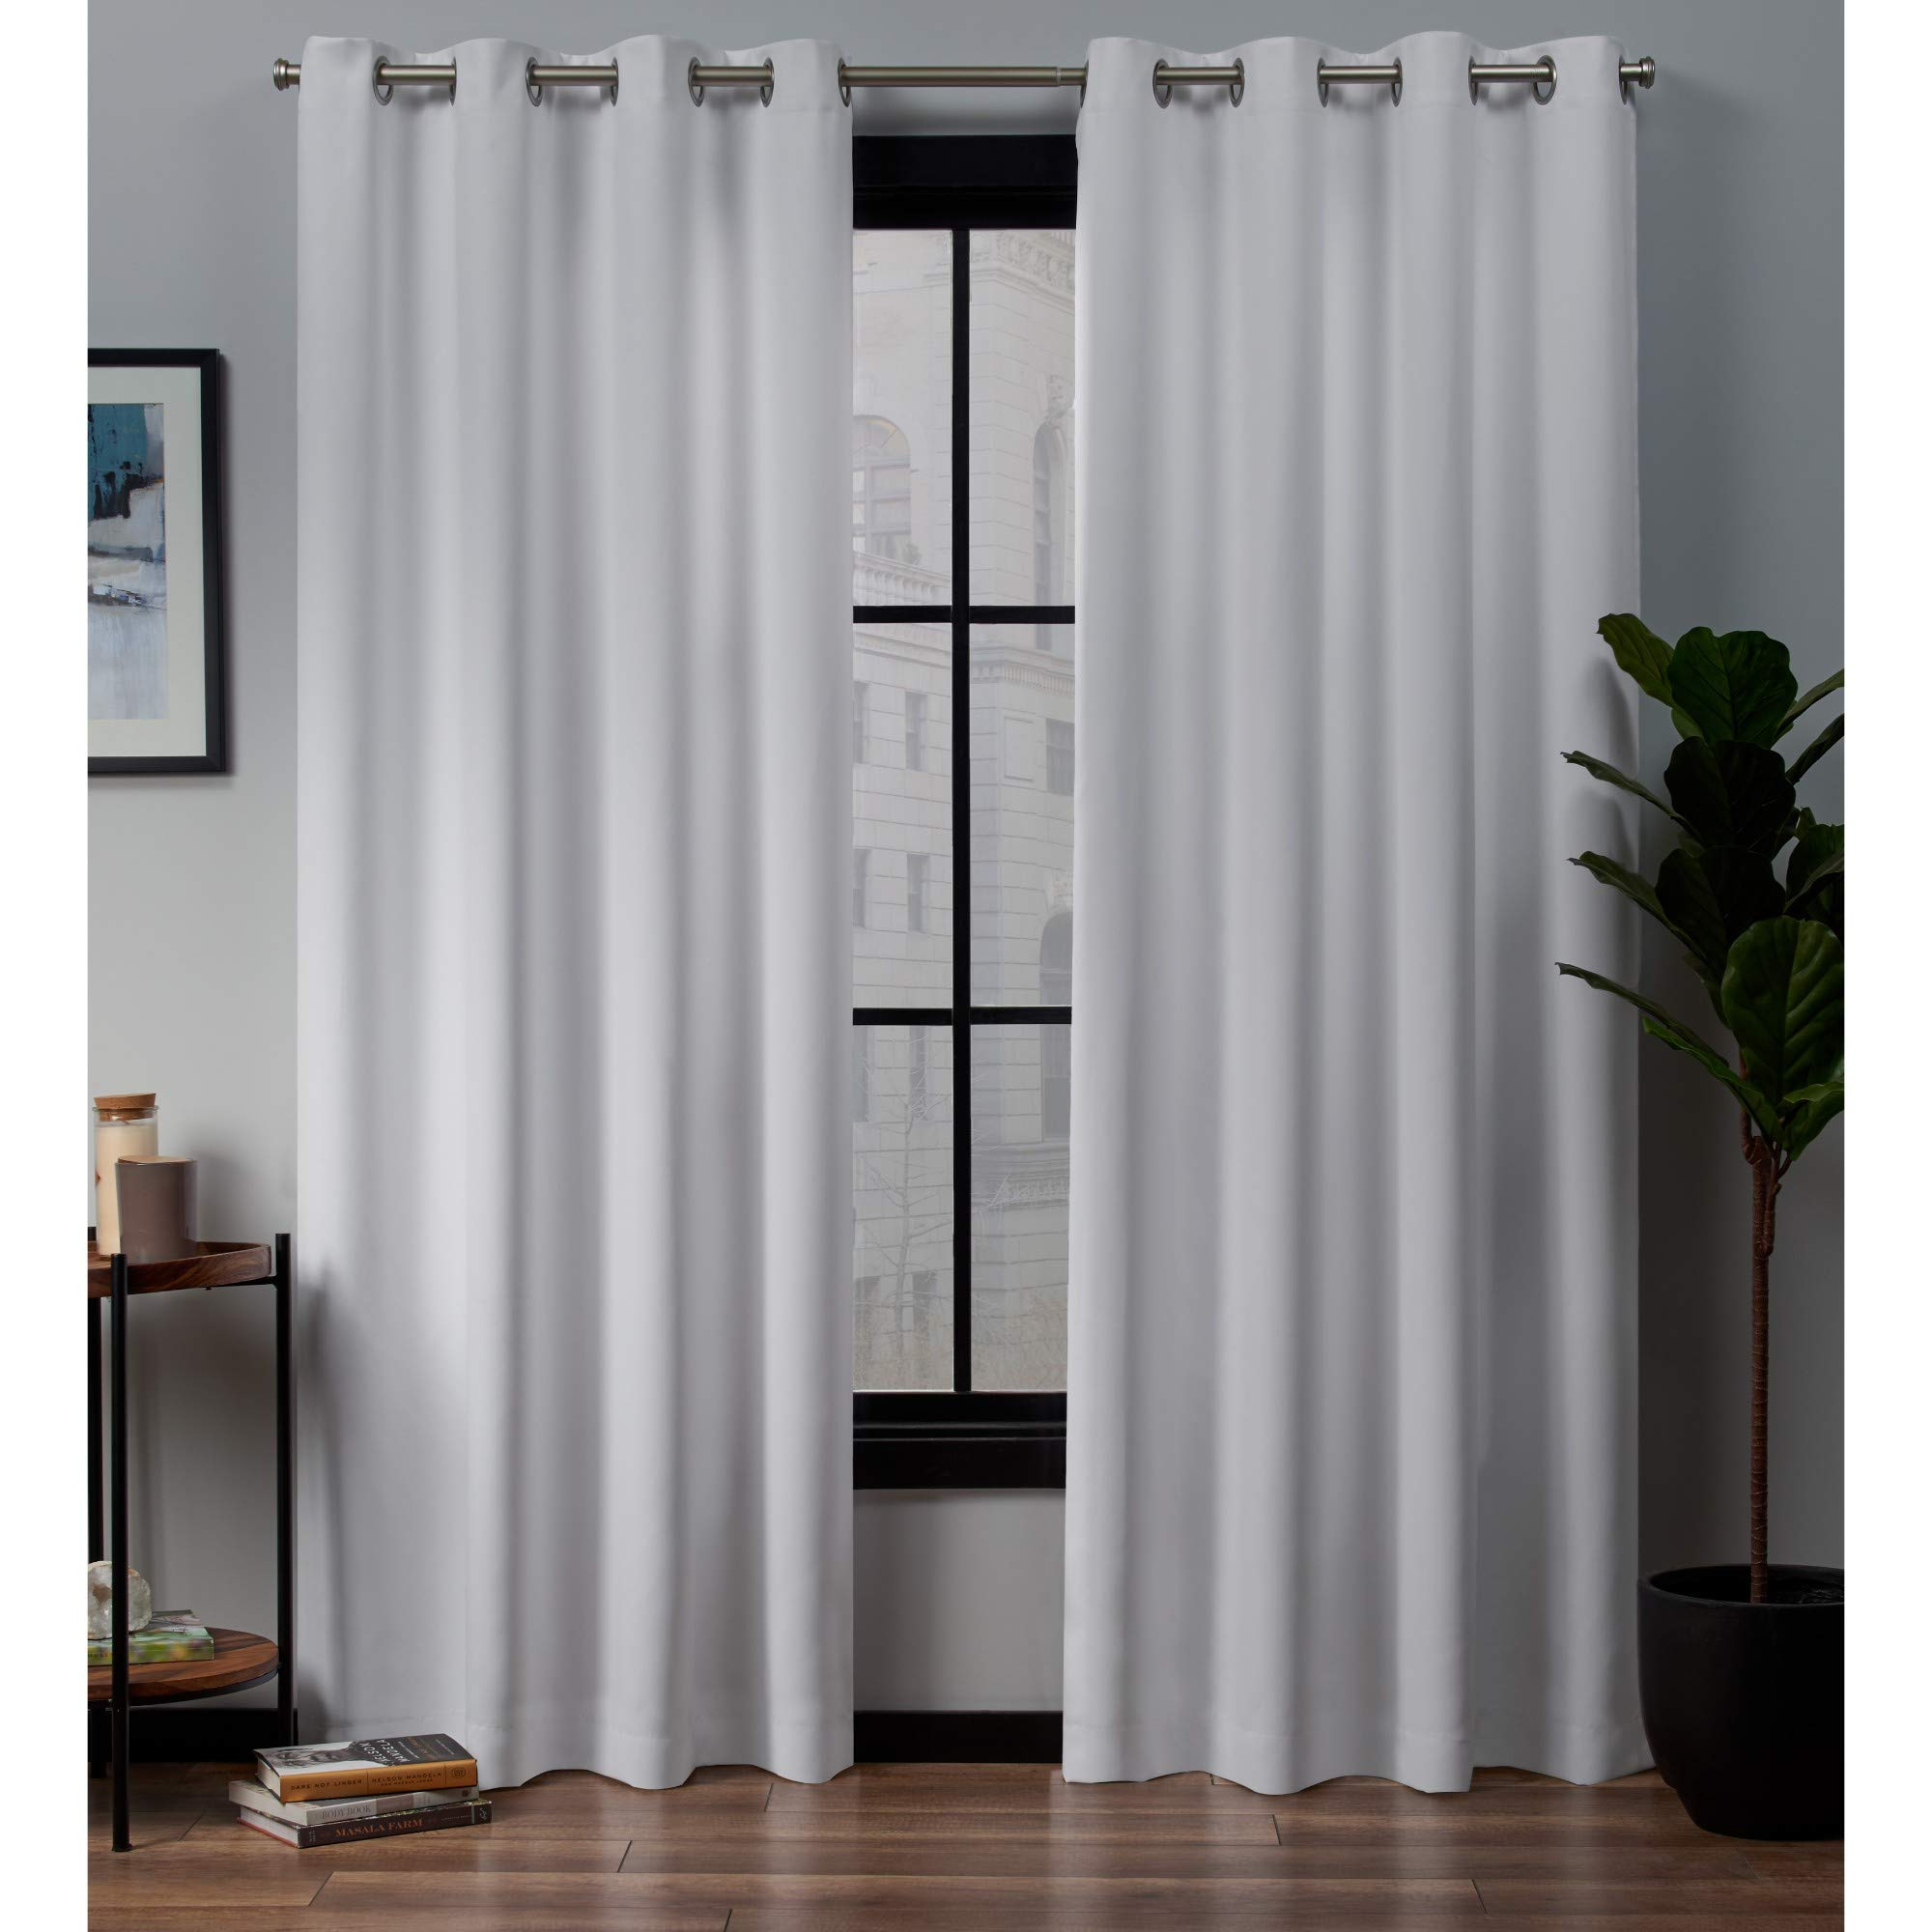 Exclusive Home Curtains Academy Total Blackout Grommet Top Curtain Panel Pair 52x84, White by Exclusive Home Curtains